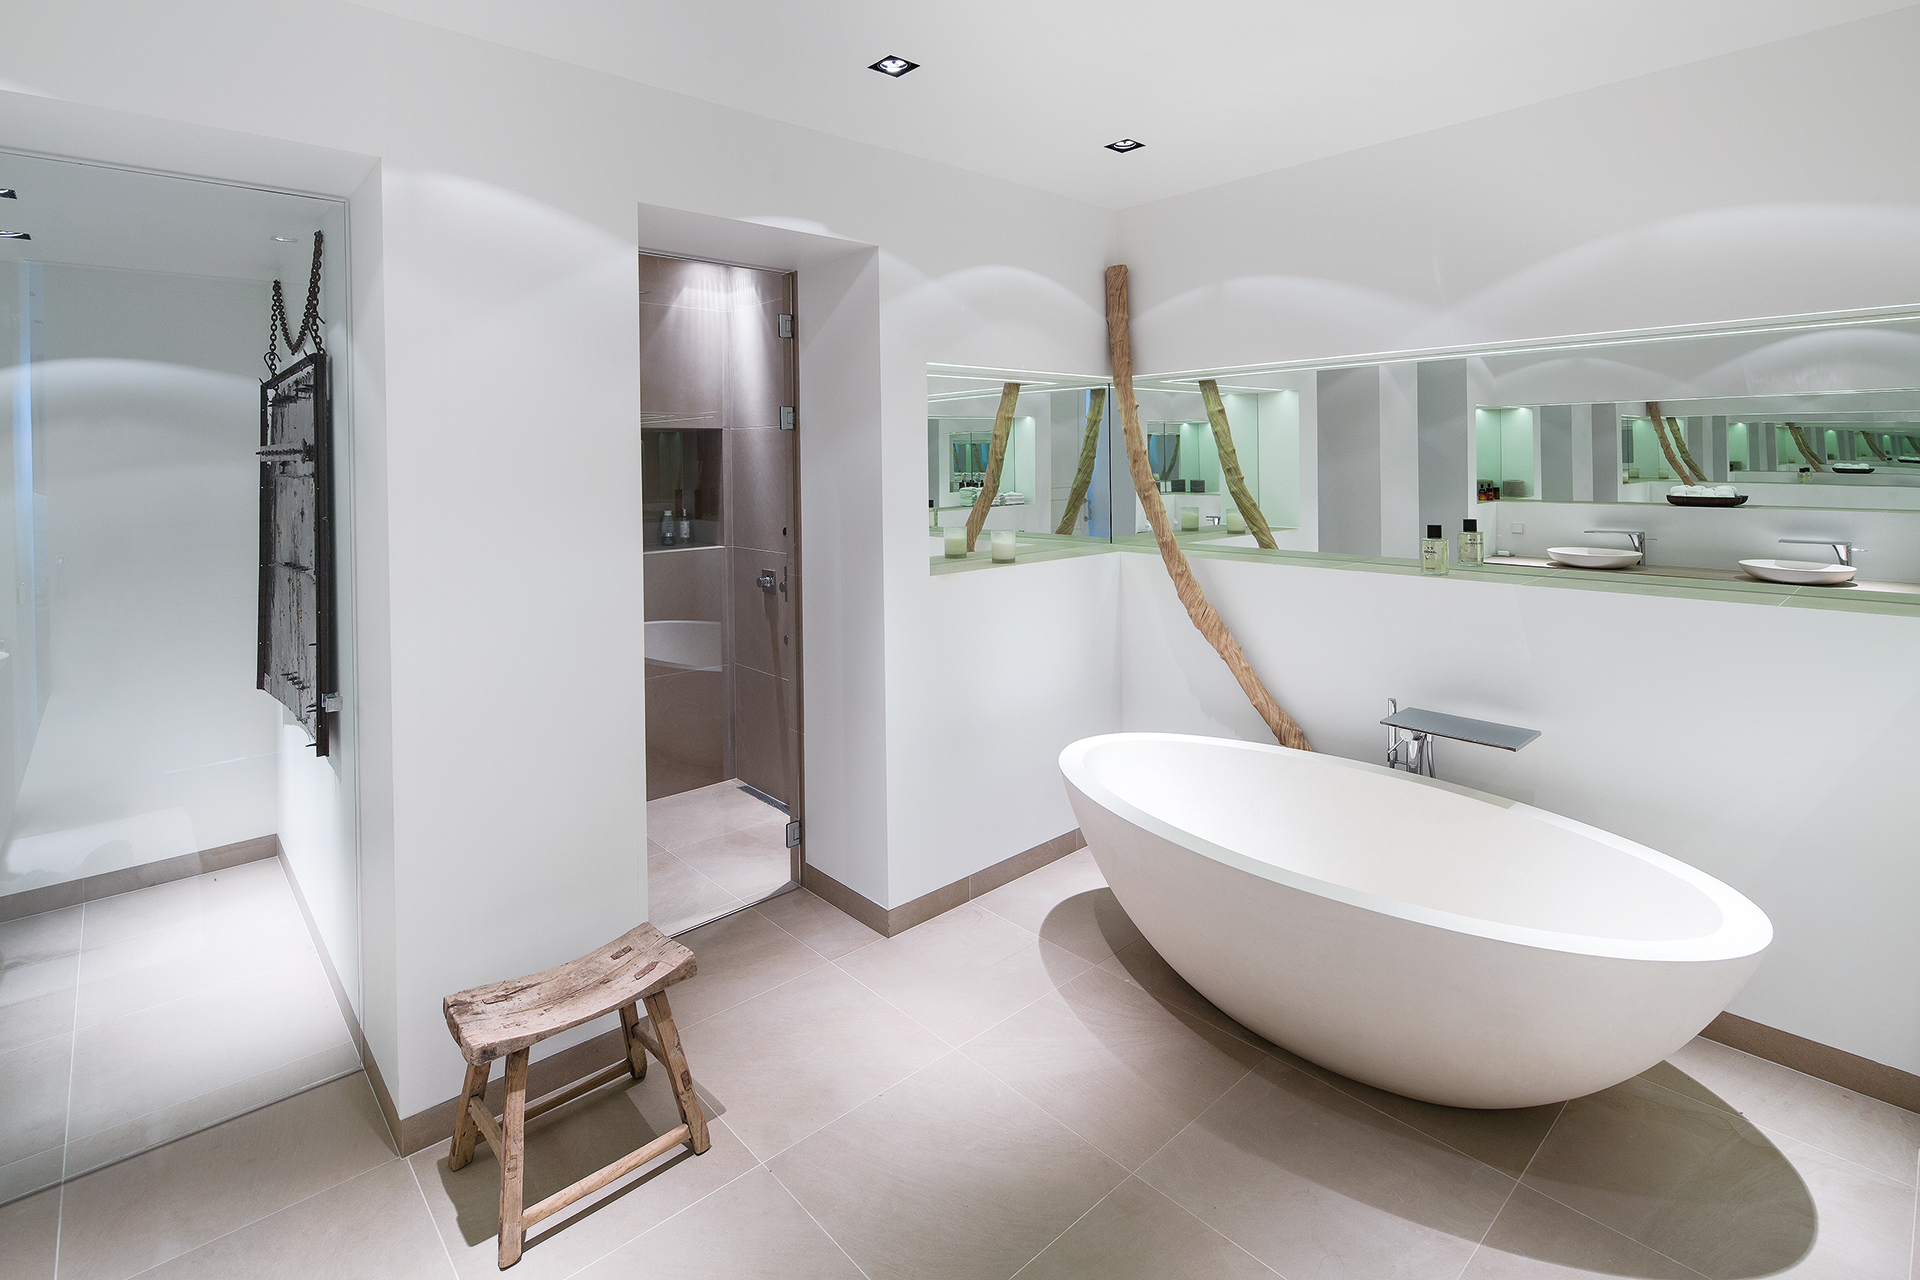 Master bathroom in white with mirrored wall list, bathtub and shower cabin